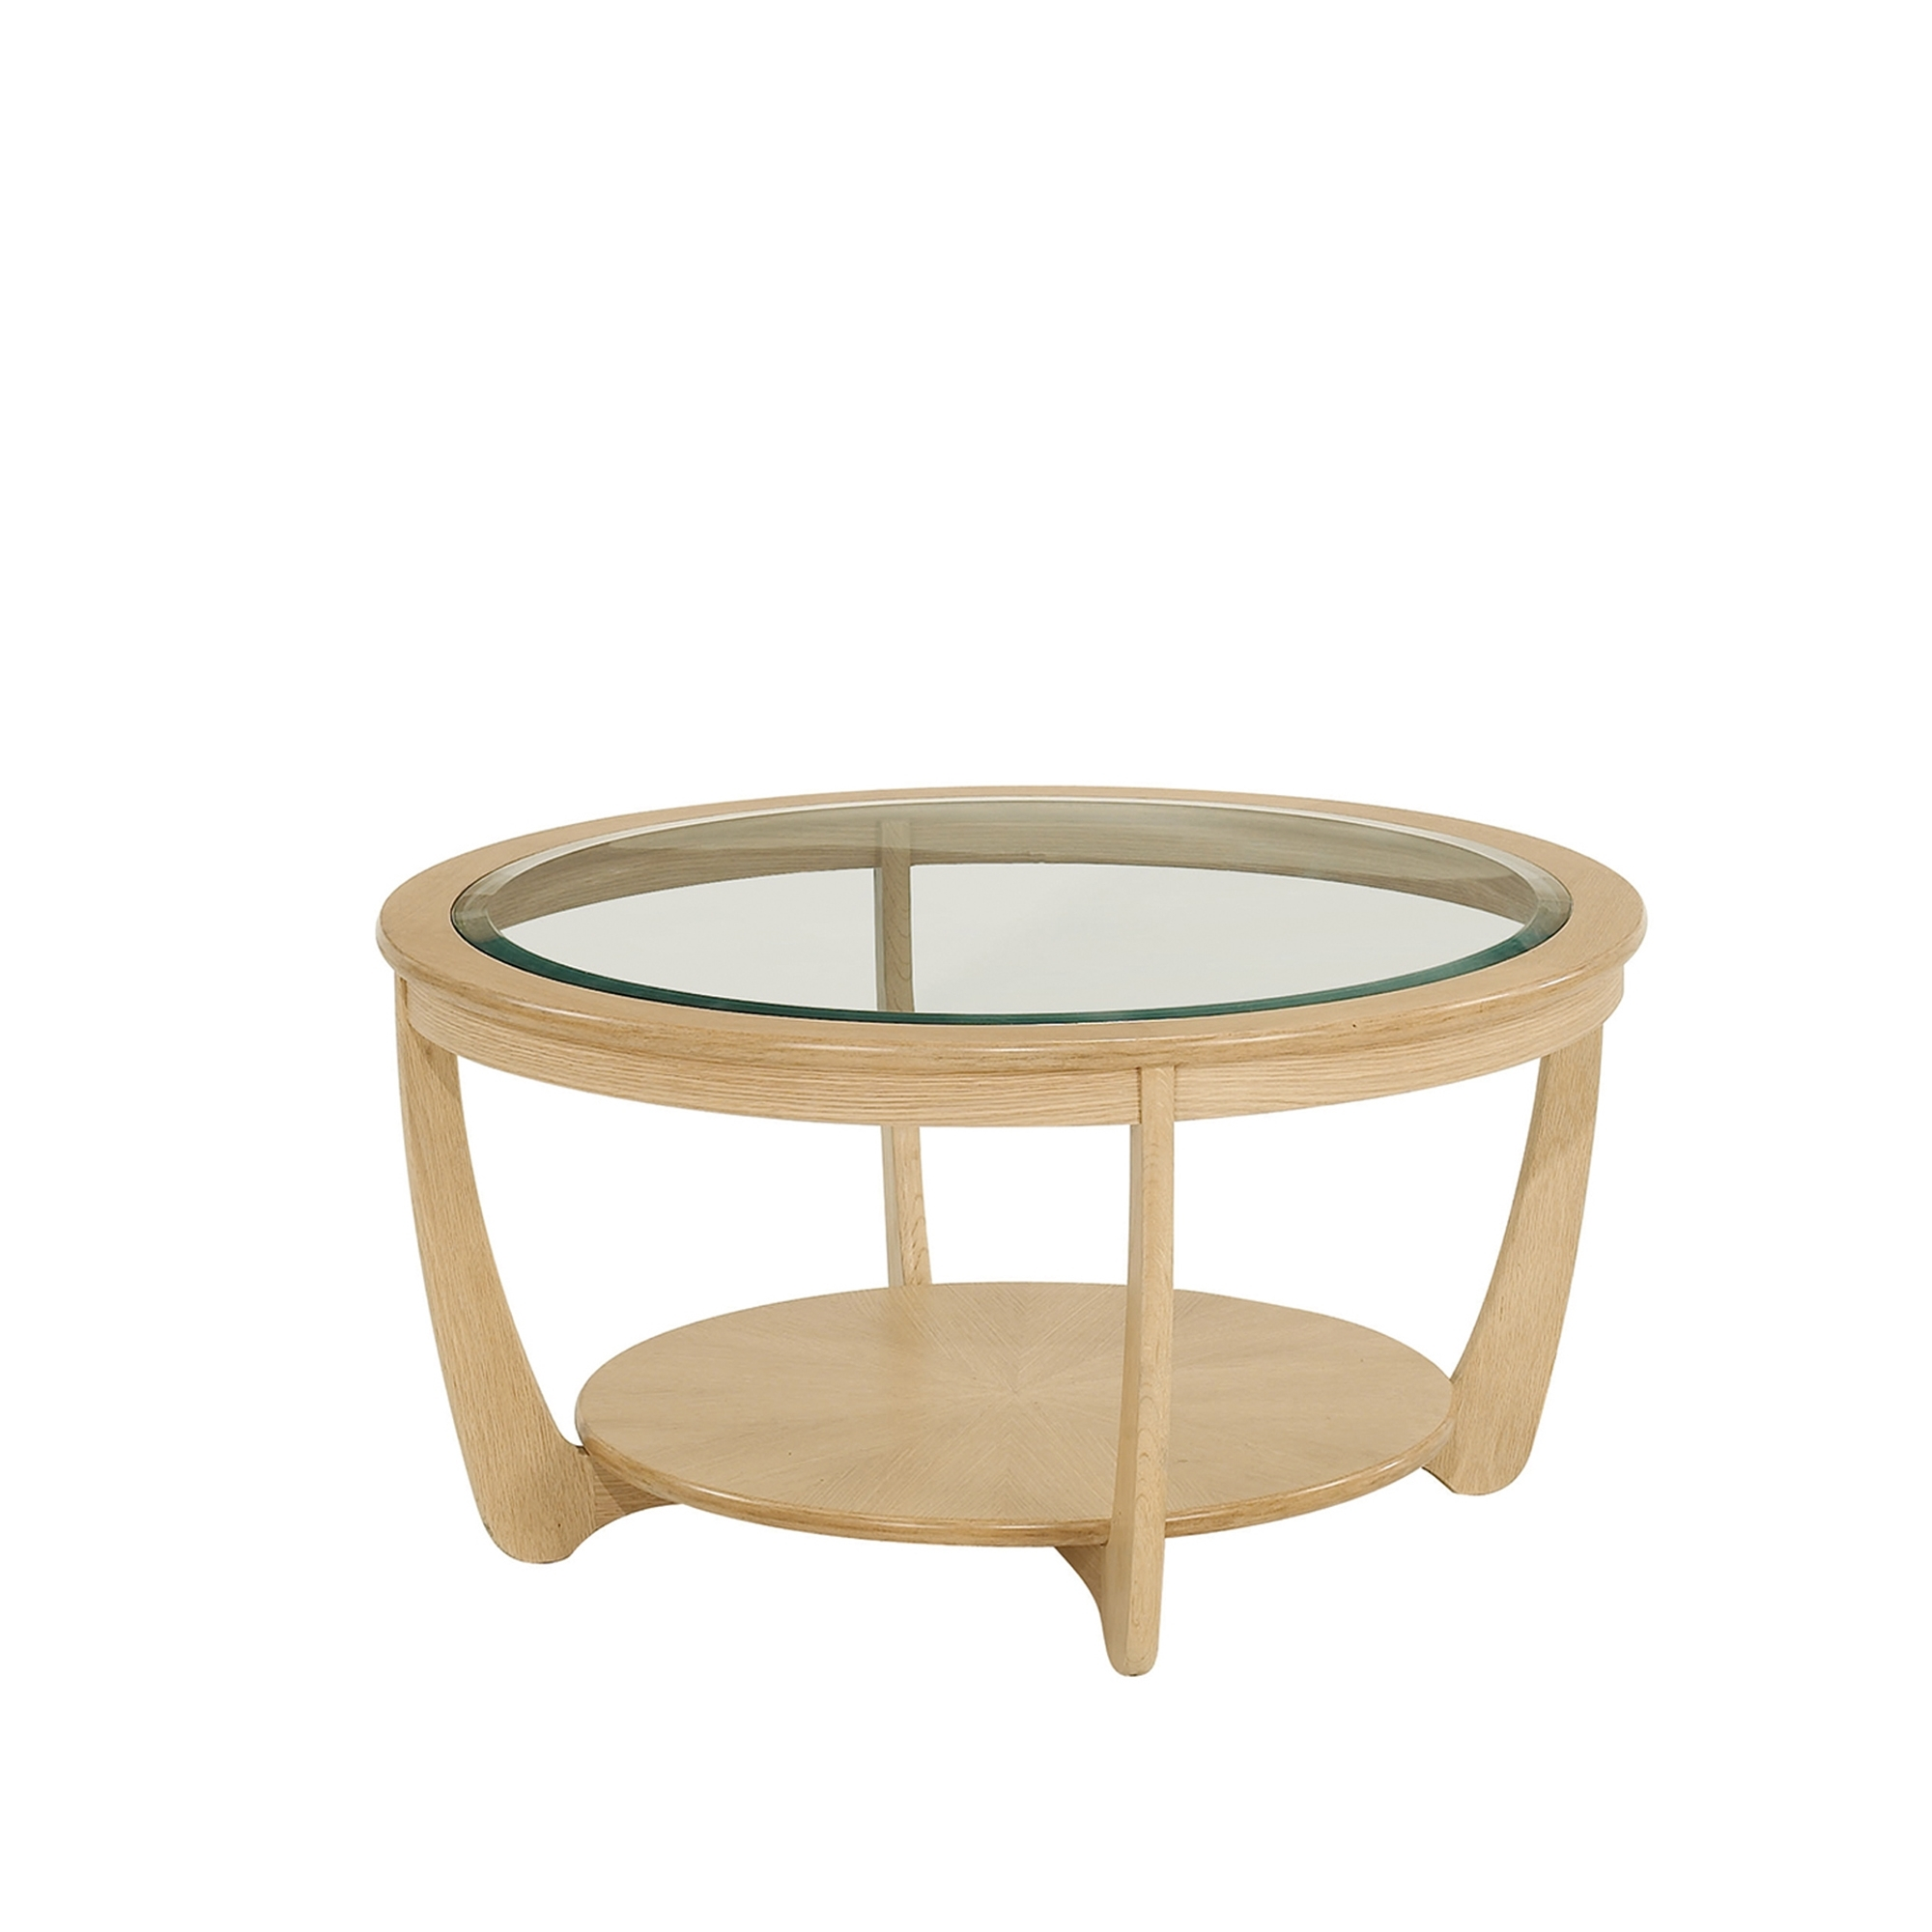 Shades Oak Nathan Shades Oak Glass Top Round Coffee Table Coffee